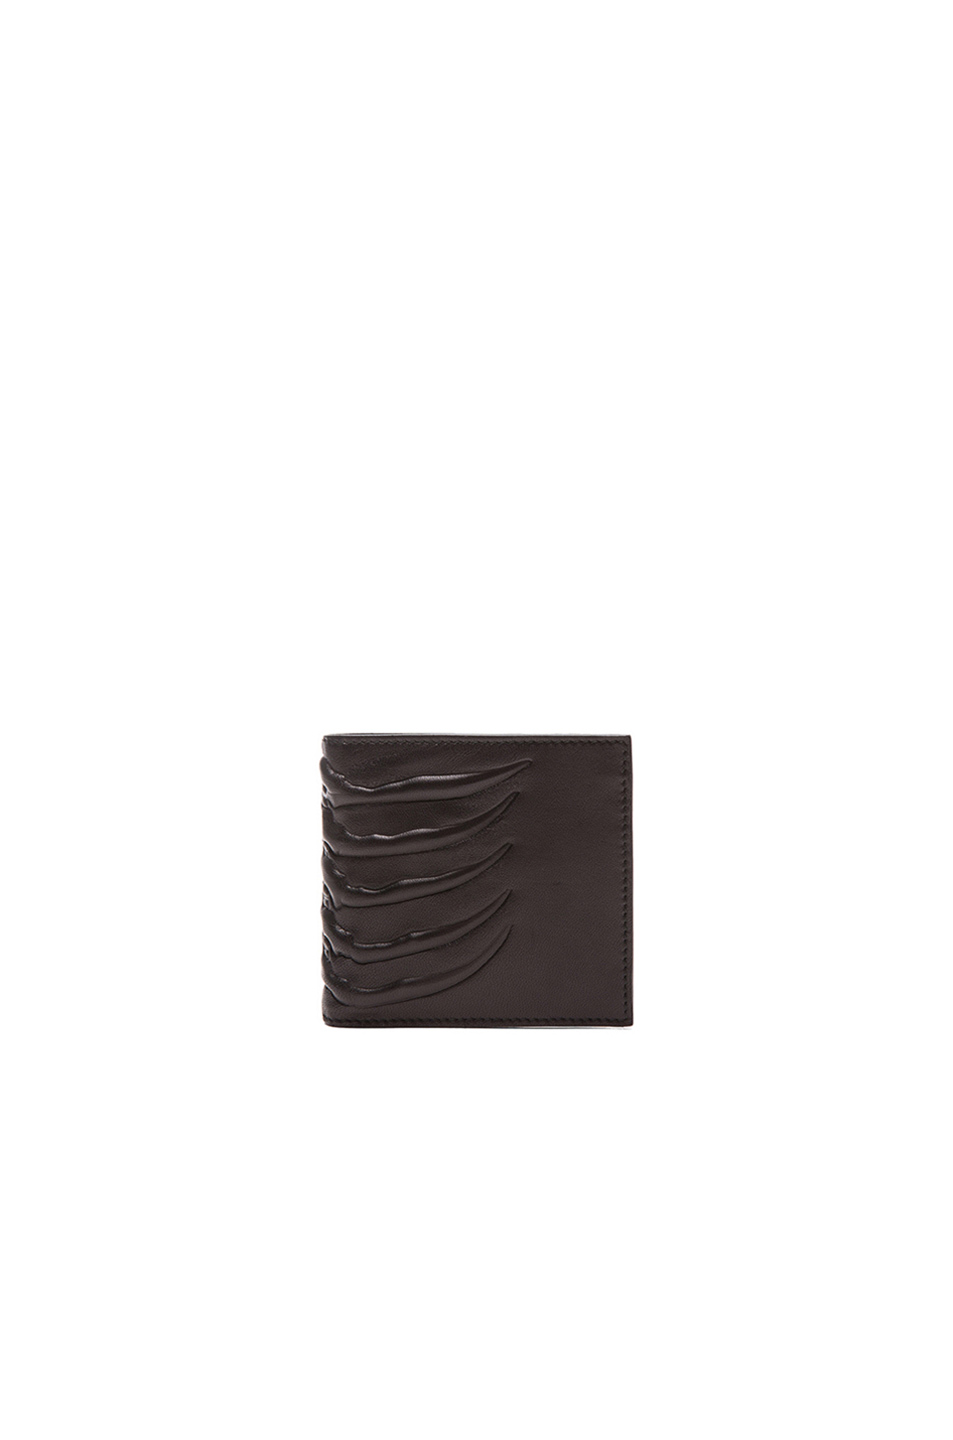 Alexander McQueen Rib Cage Billfold Wallet in Black